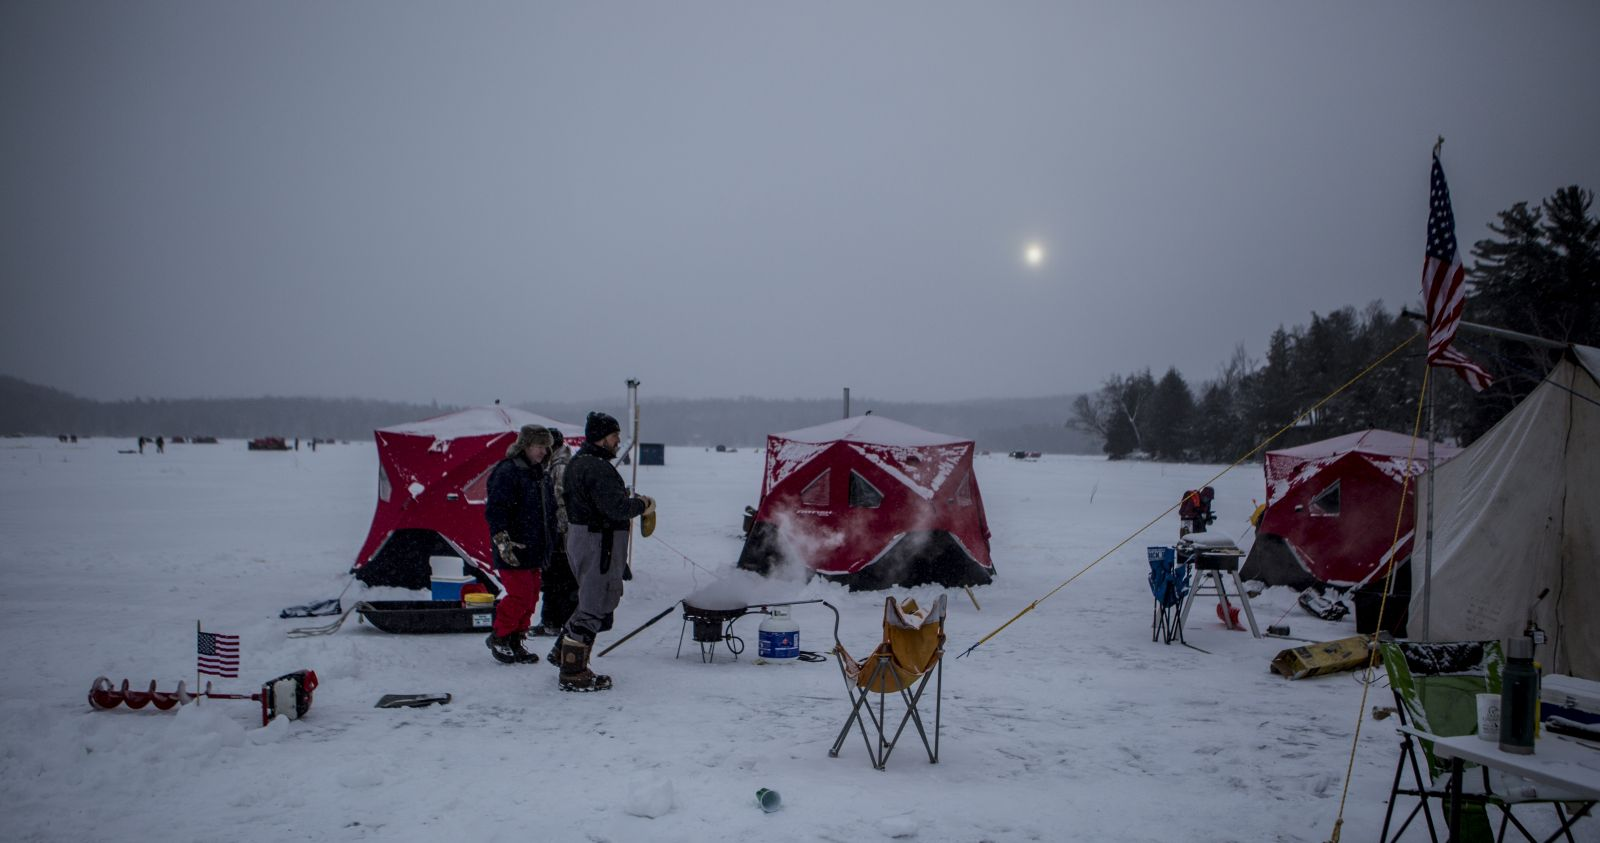 A glimpse of Simon Pond during The Northern Challenge